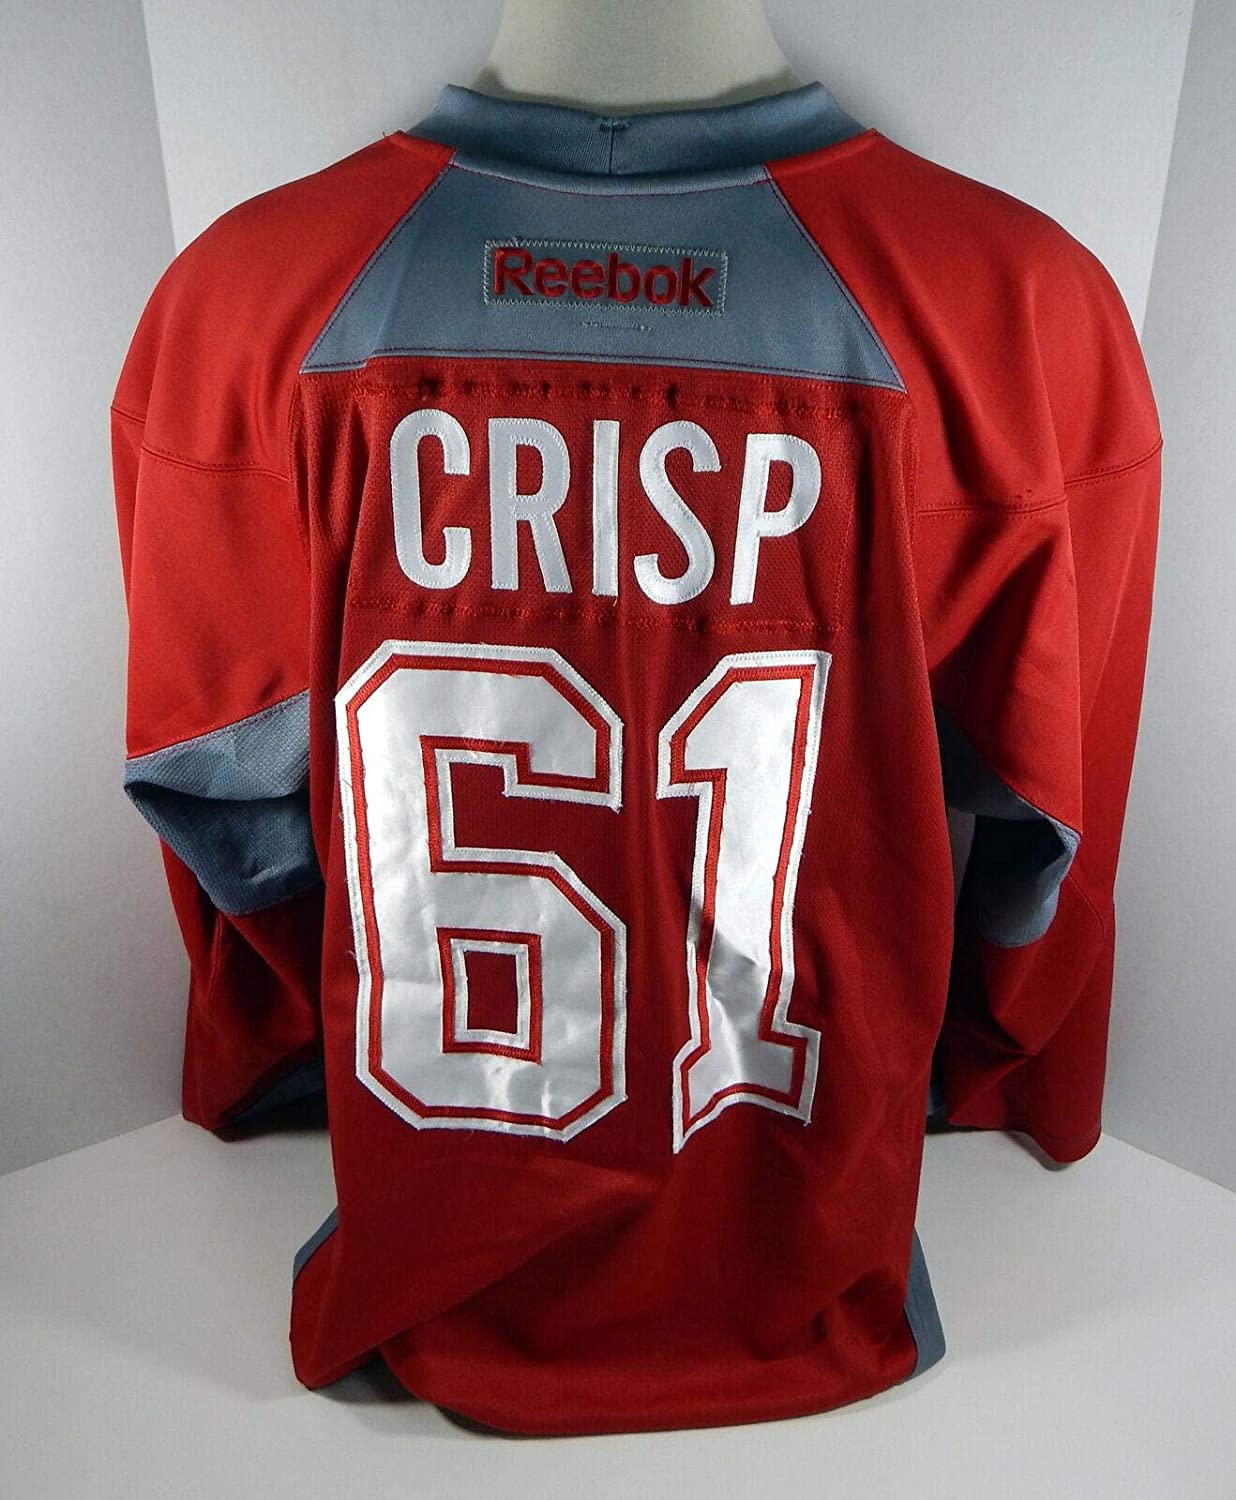 separation shoes 81947 f0060 Montreal Canadiens Connor Crisp #61 Game Used Red Practice ...